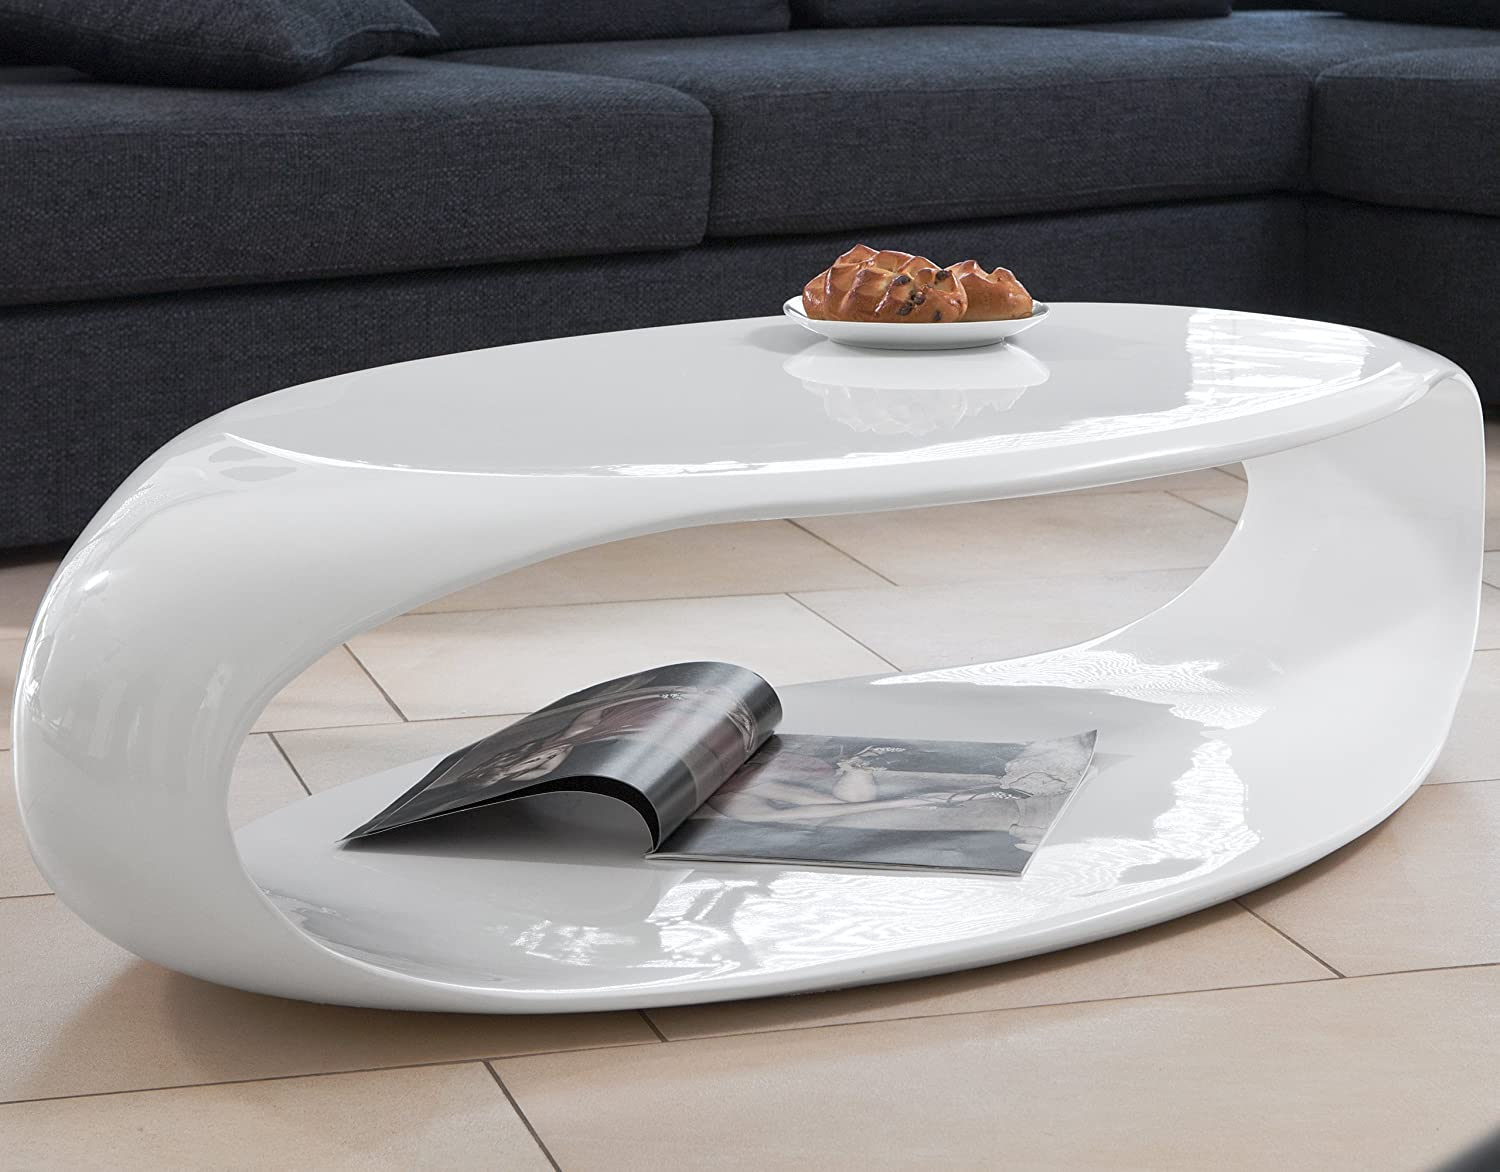 Salesfever Couch Table White High Gloss 120 X 60 Cm Fibreglass Right Square August Futuristic Living Room Table In Retro Look With Lots Of Storage Area 120 X 60 Cm Amazon De Kuche Haushalt